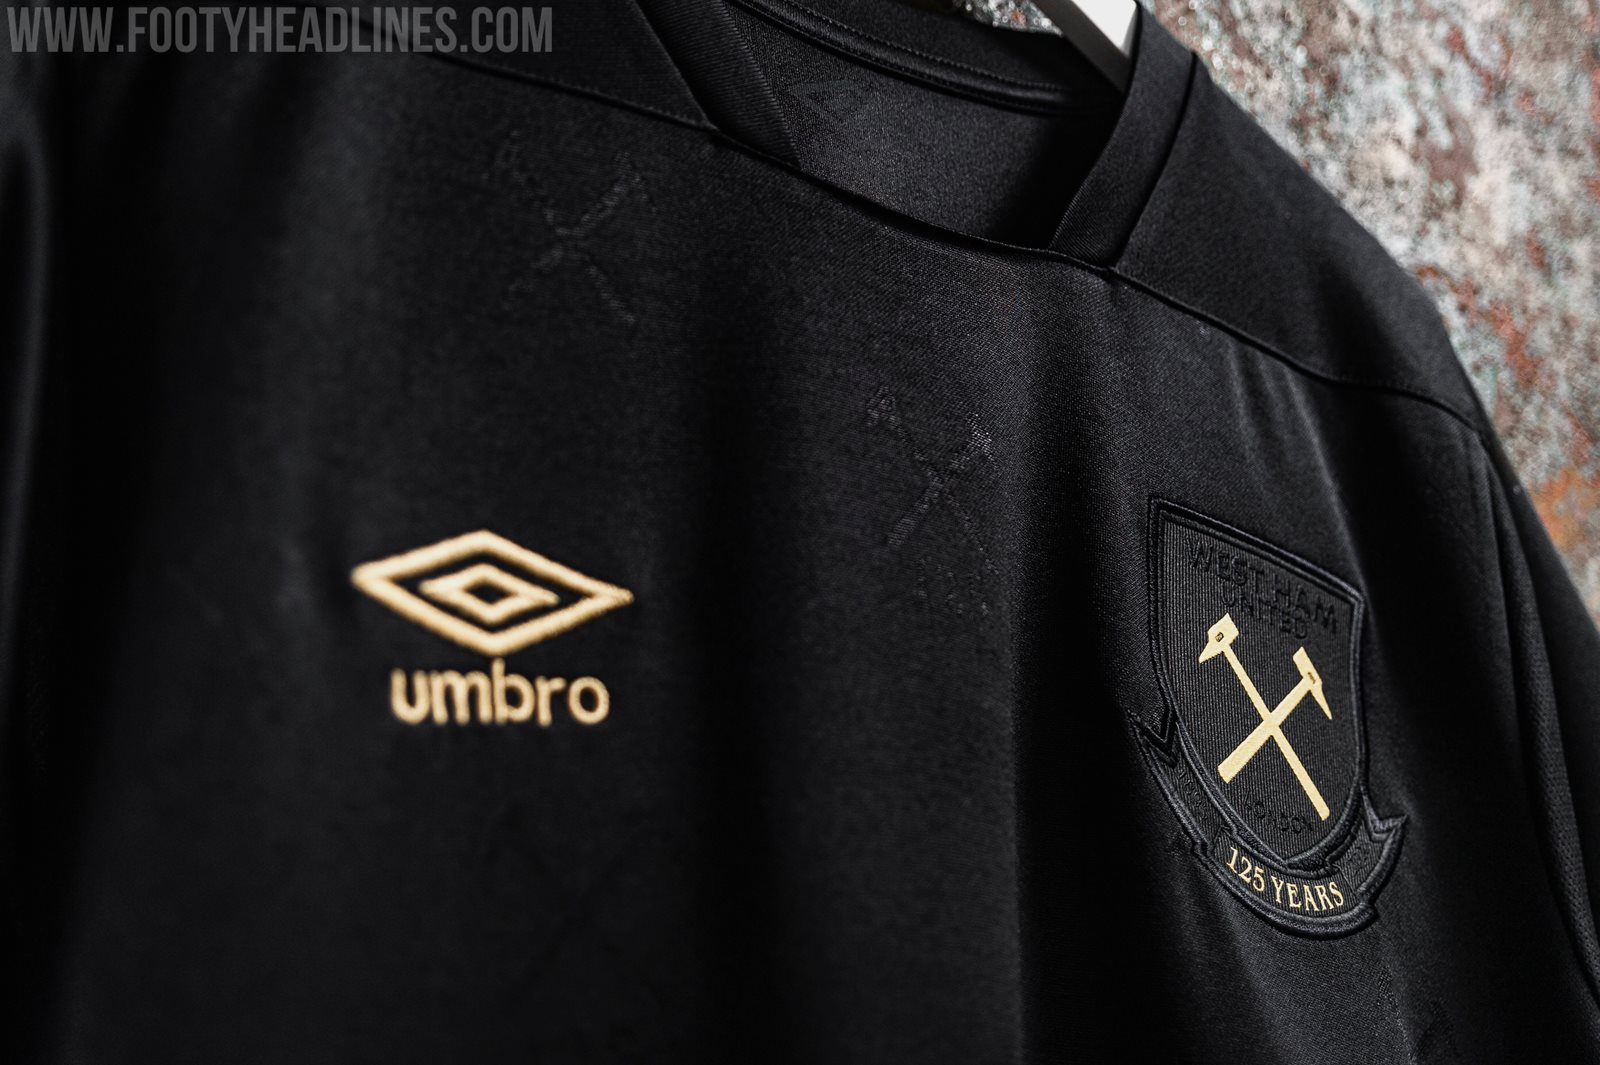 Classy West Ham 20-21 Third Kit Released - 125th ...